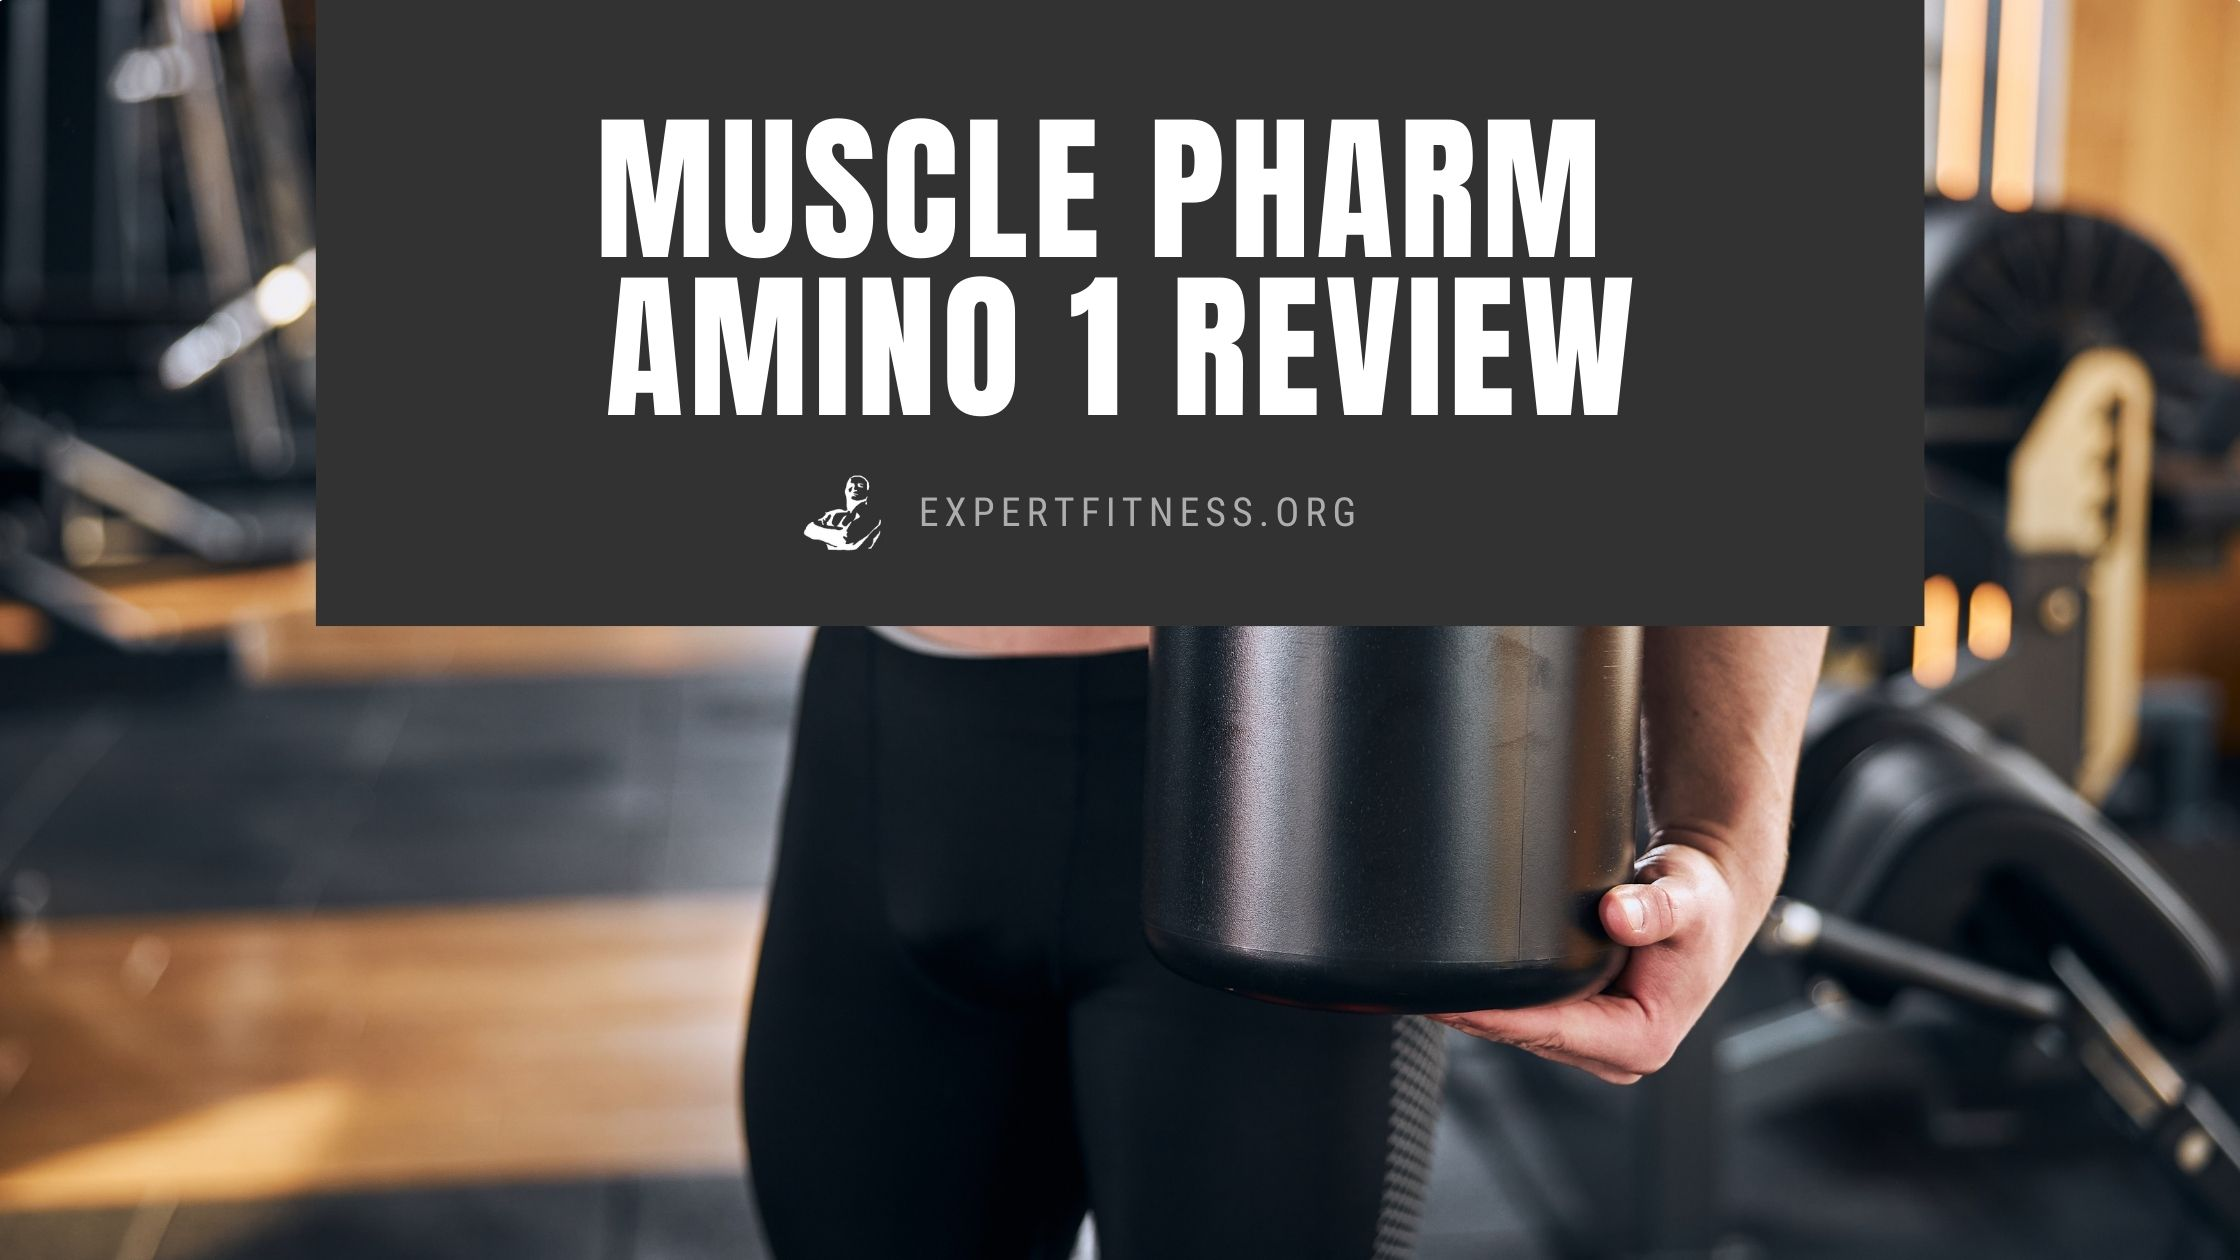 Muscle Pharm Amino 1 Review